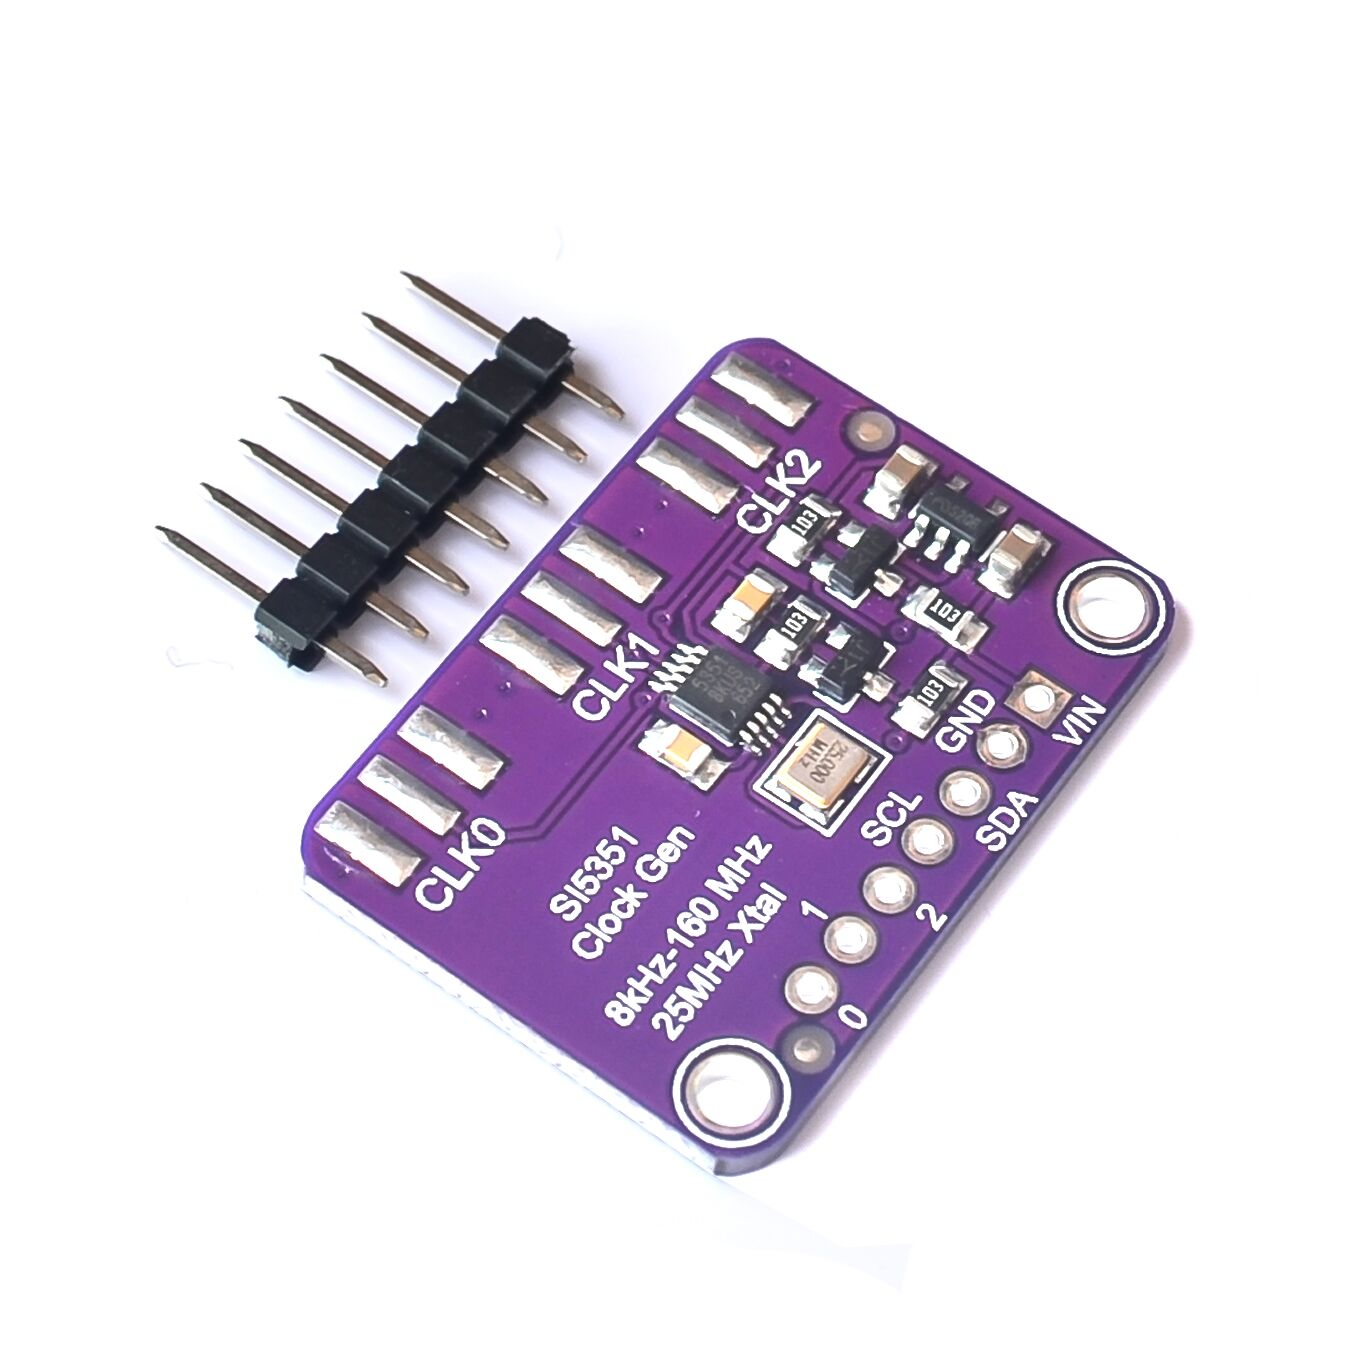 10PCS LOT Si5351 Si5351A Clock Breakout Board Precision 25MHz Crystal Controller Signal